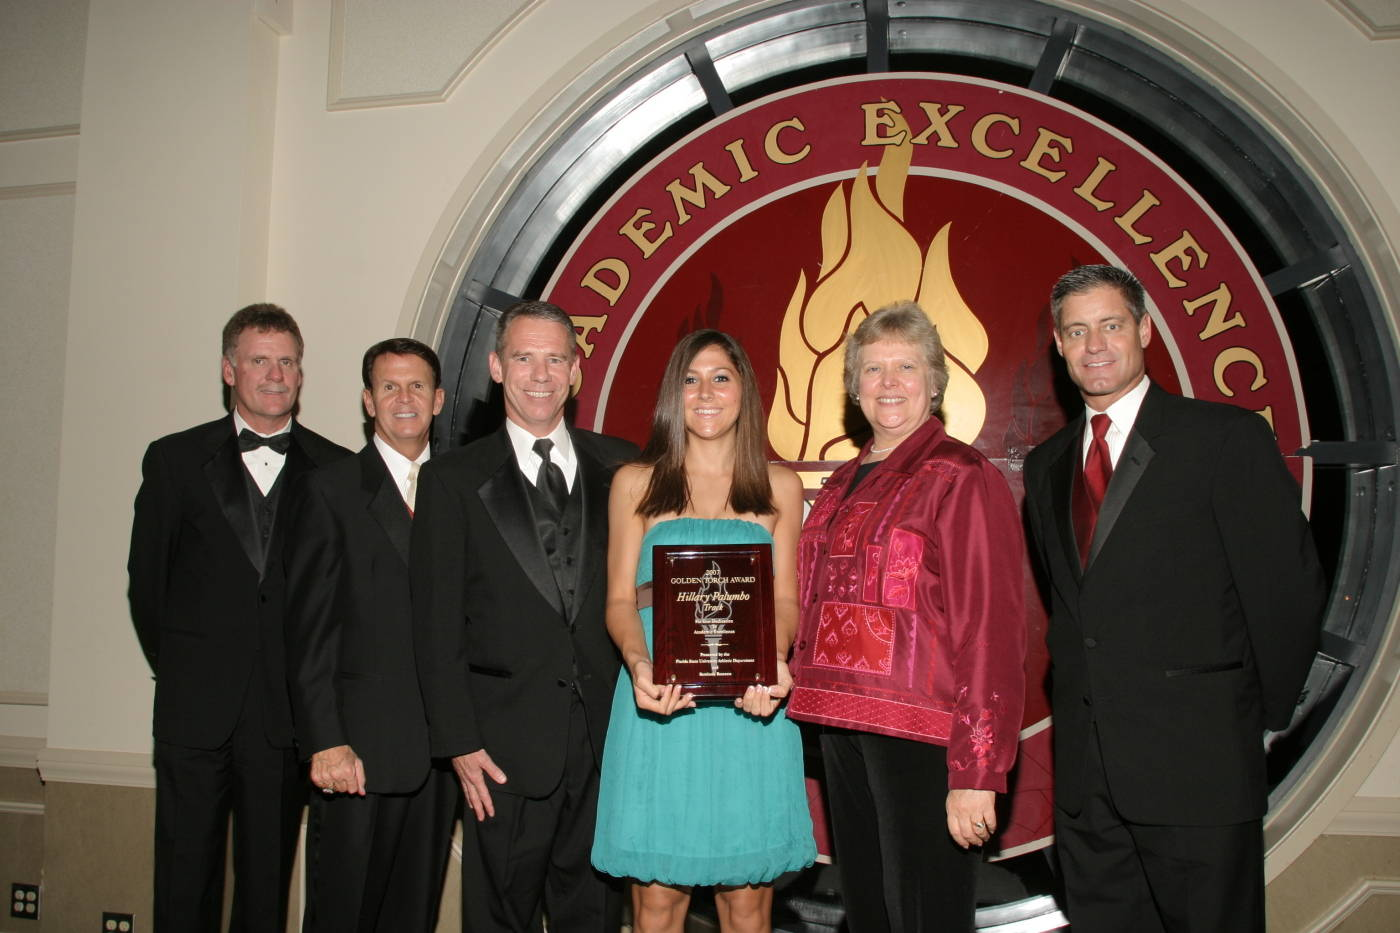 Women's Track & Field 2006-07 Golden Torch Award recipient, Hillary Palumbo.